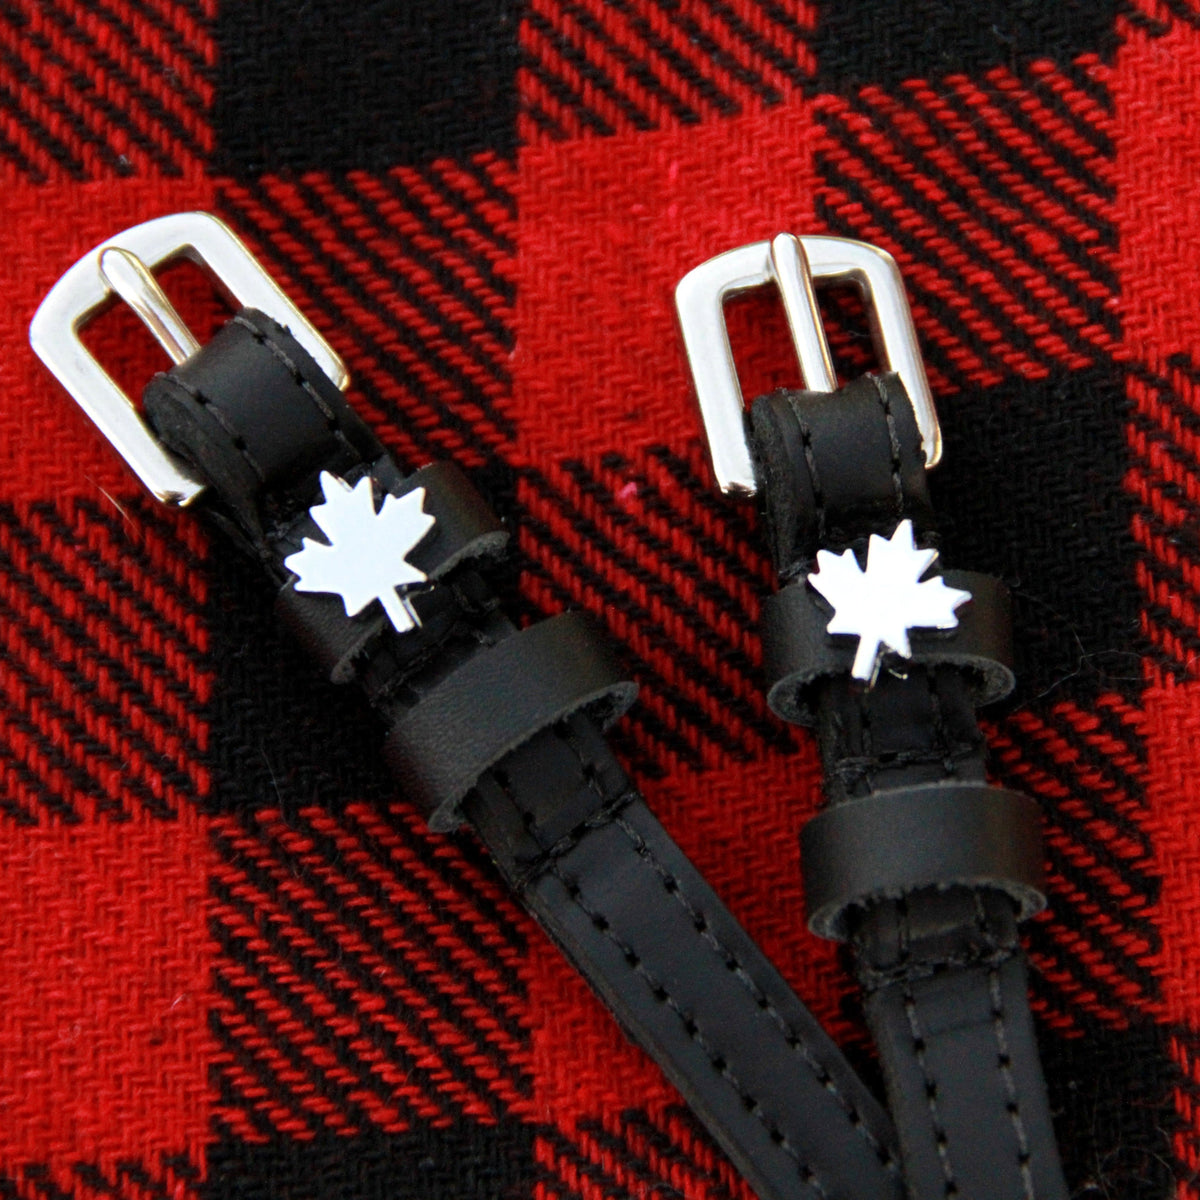 ManeJane Spur Straps Canadian equestrian team apparel online tack store mobile tack store custom farm apparel custom show stable clothing equestrian lifestyle horse show clothing riding clothes horses equestrian tack store